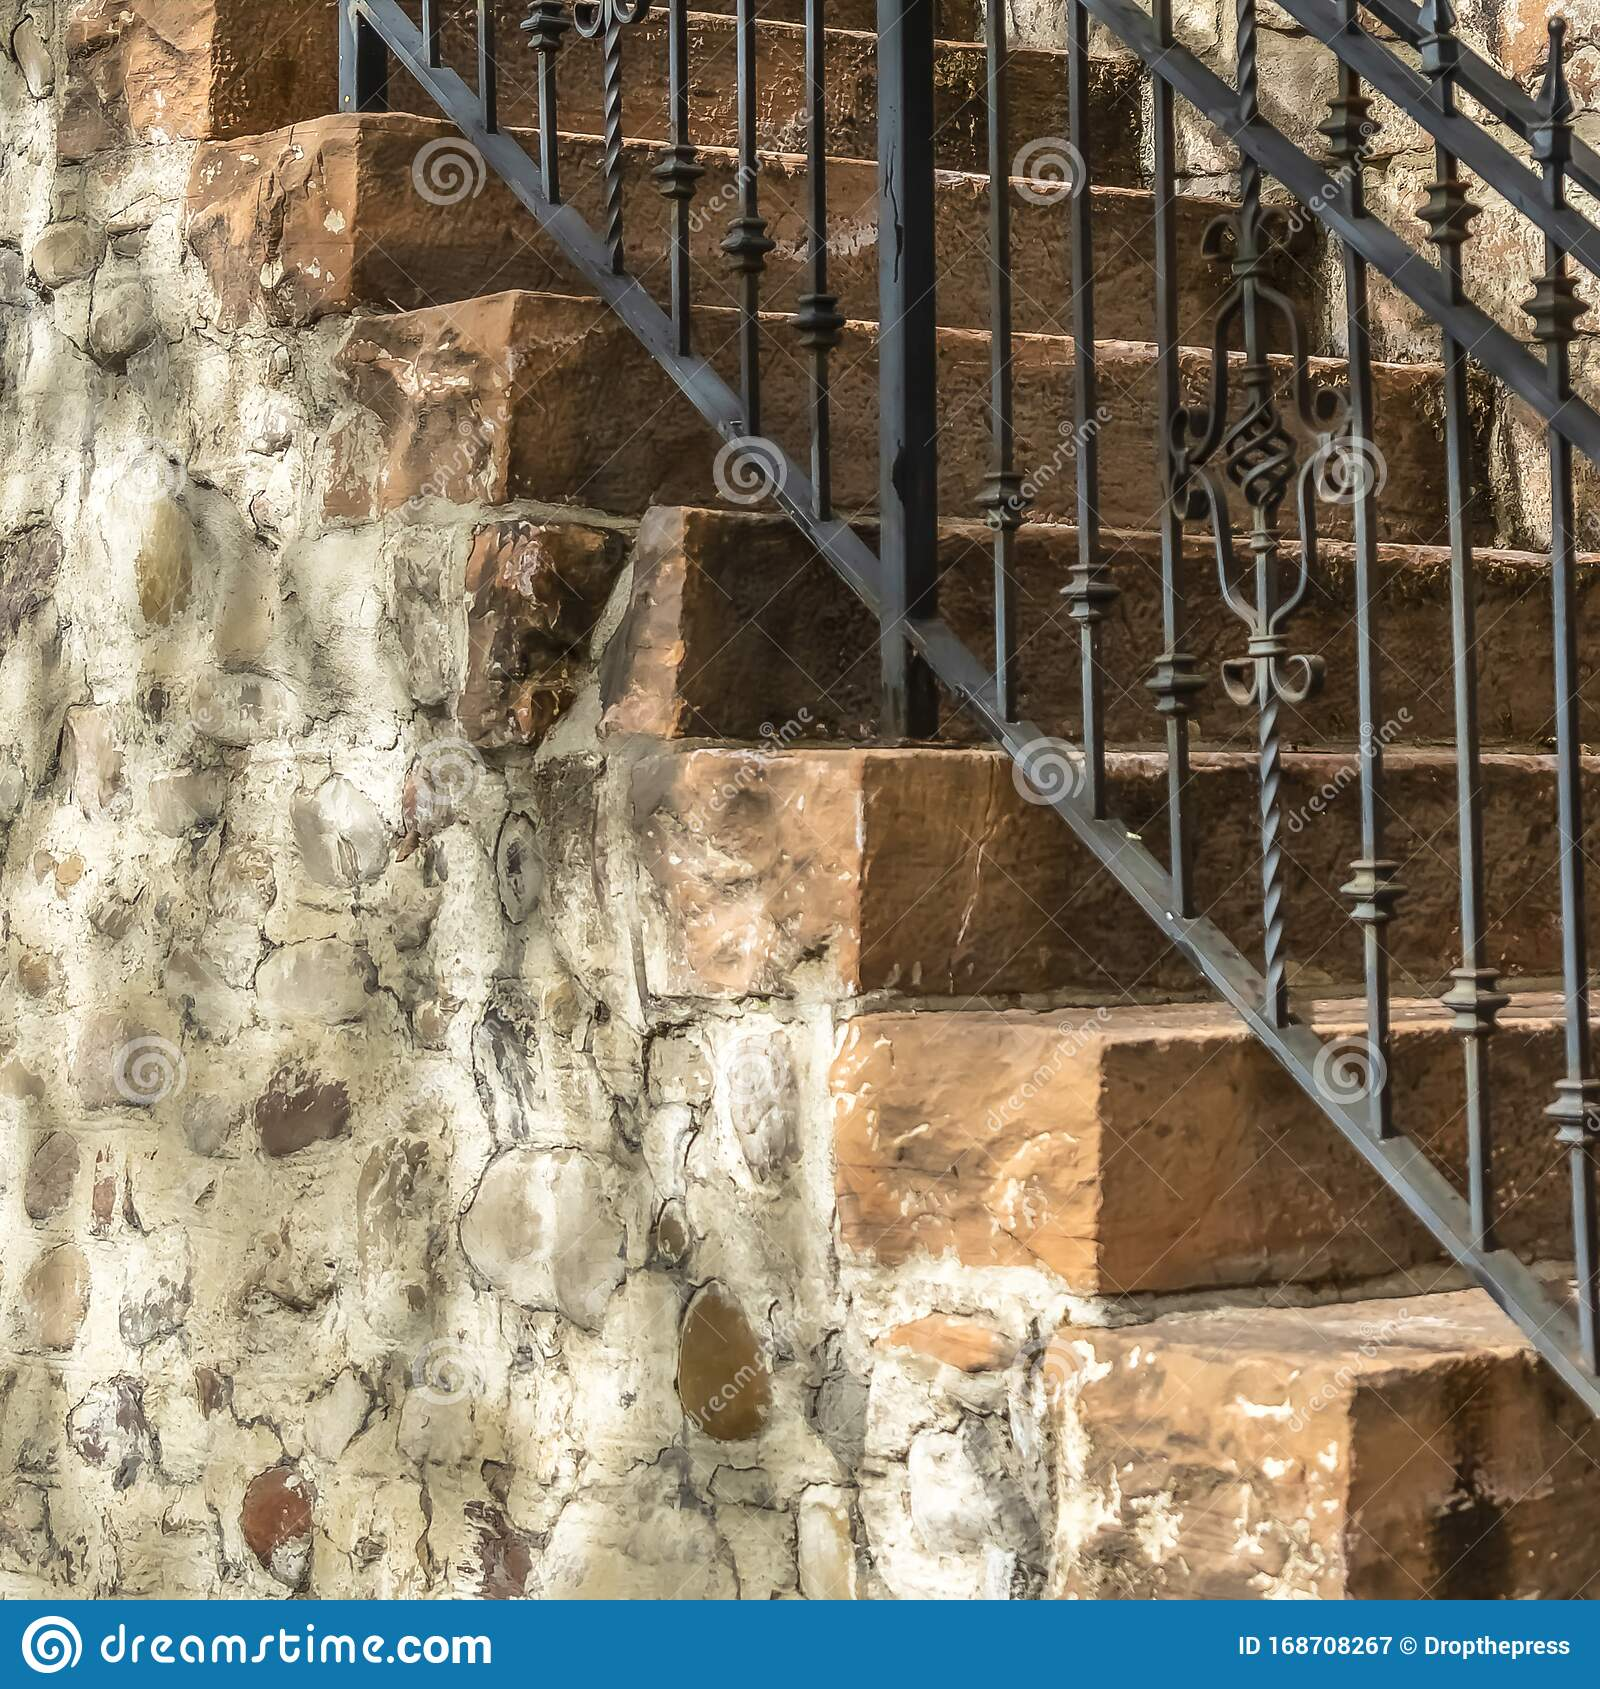 Square Outdoor Staircase With Stone Steps And Black Metal Railing Against A Fence Stock Image Image Of Architectural Metal 168708267